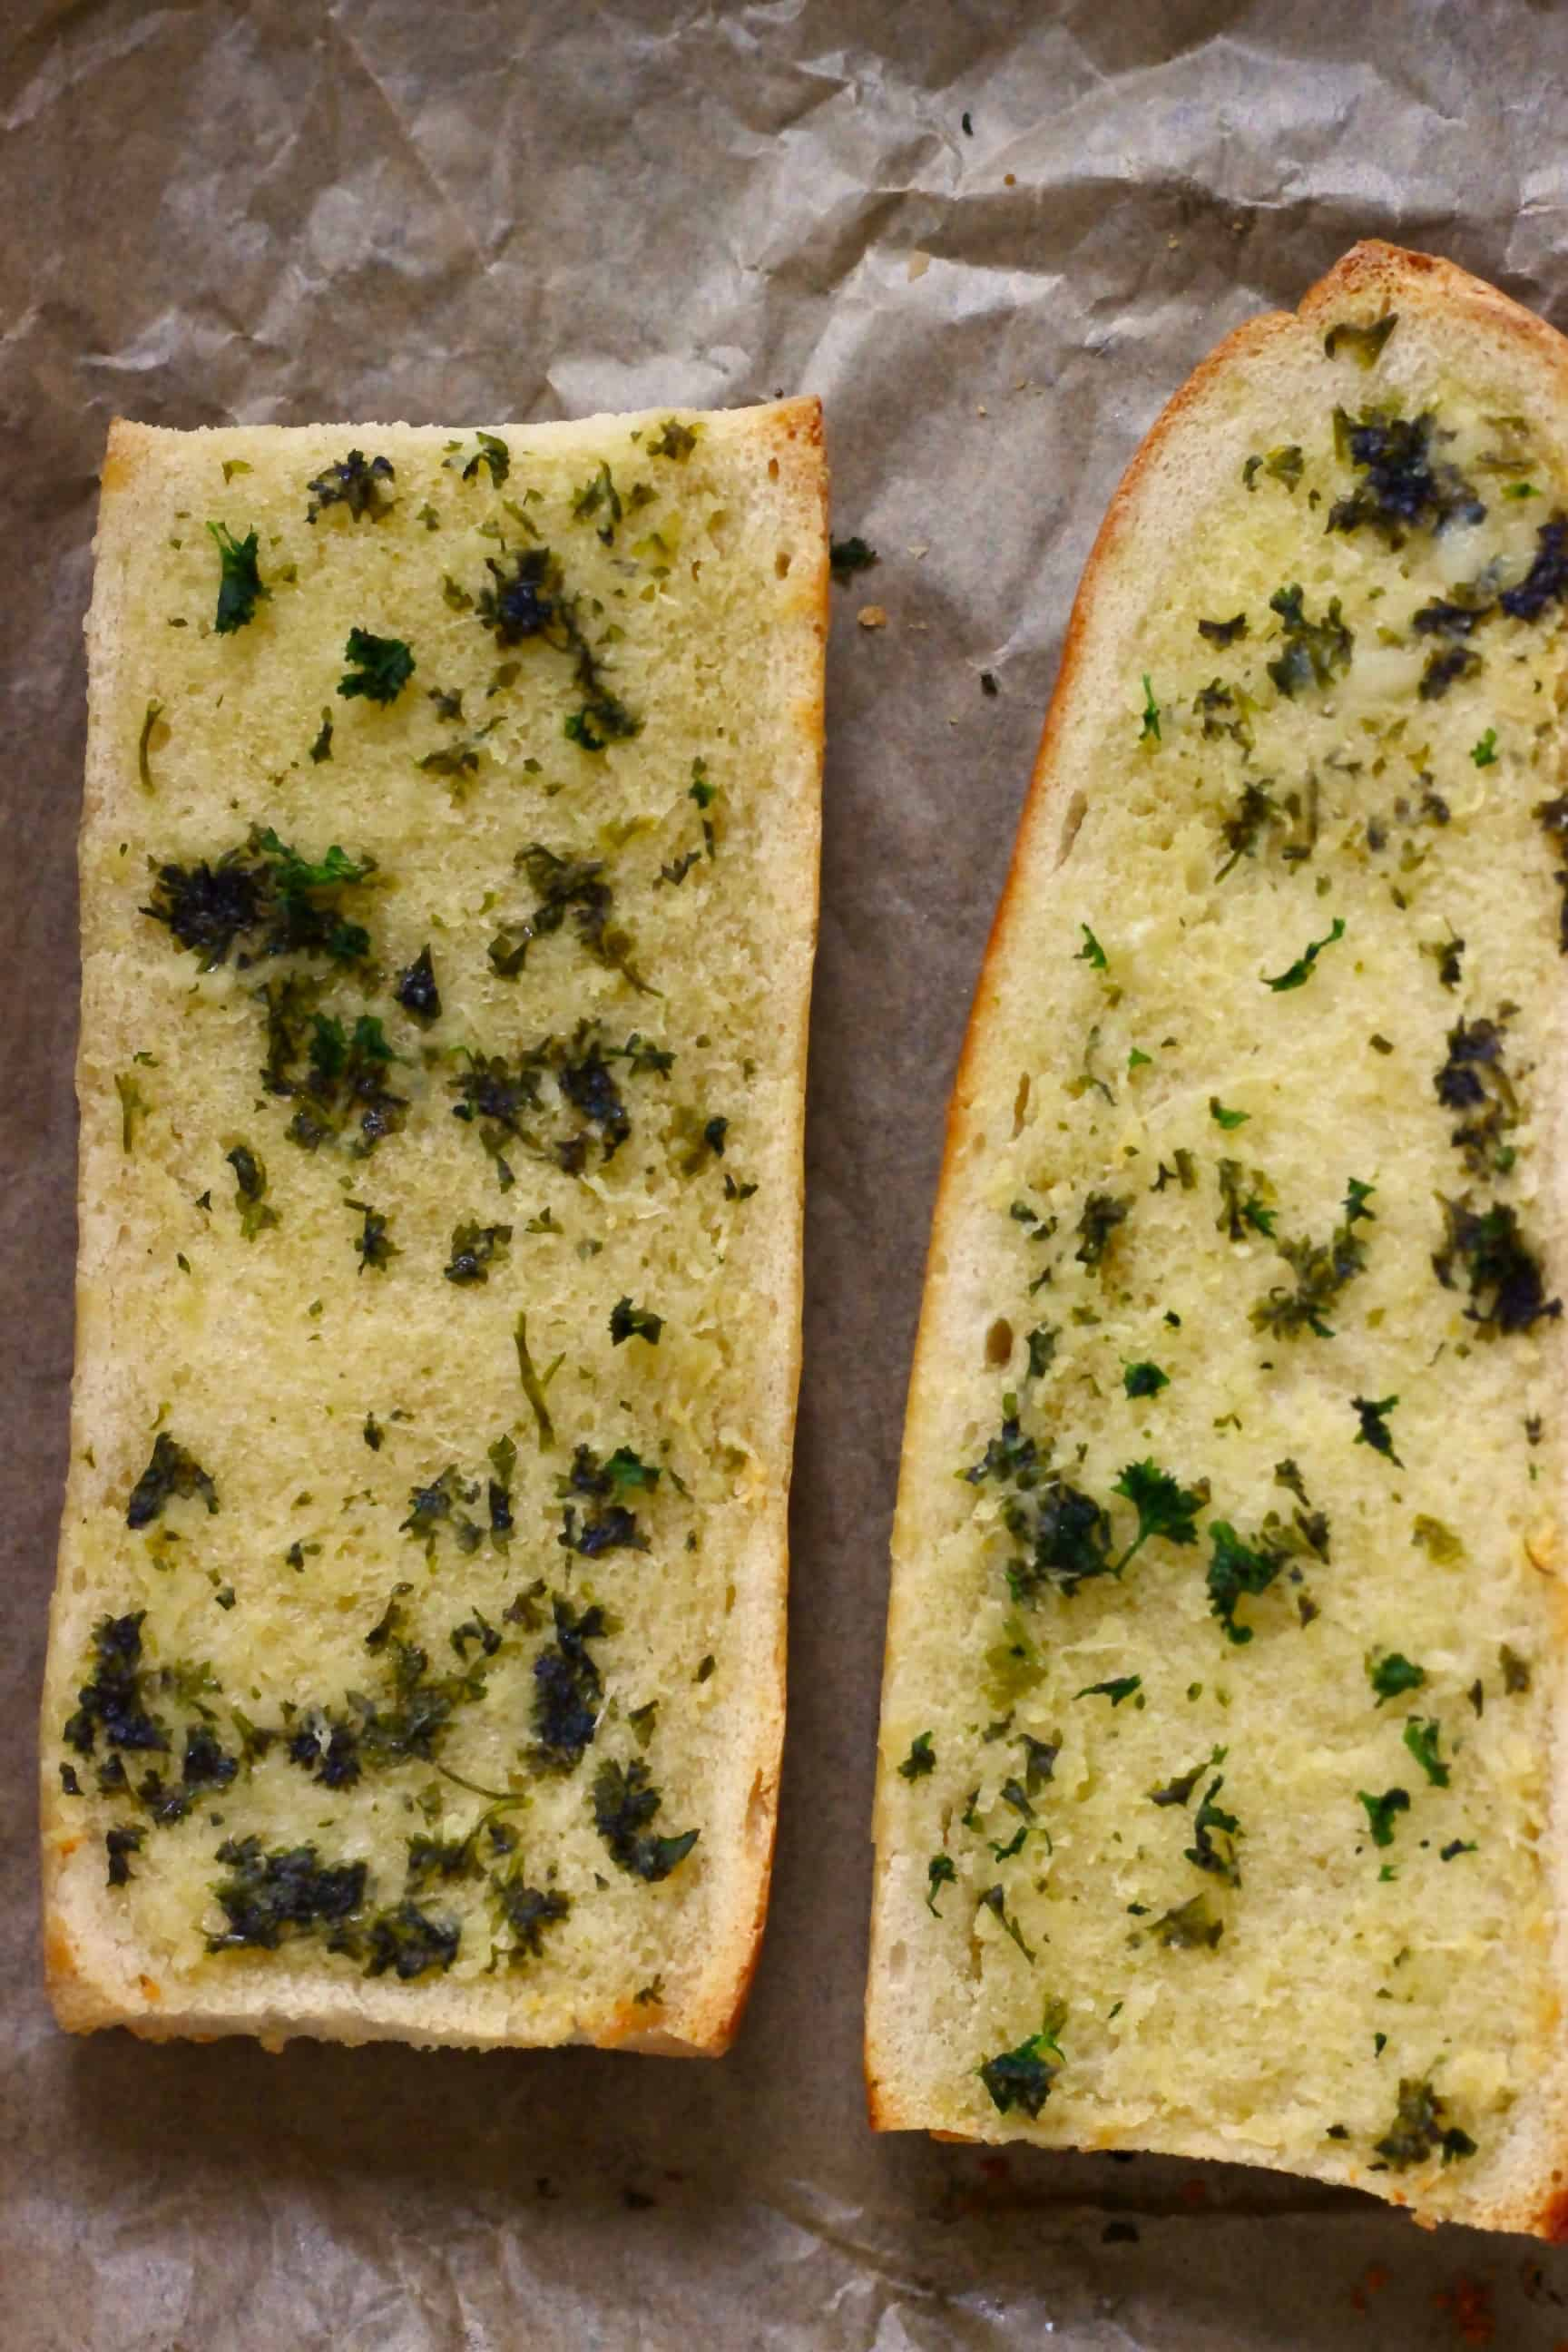 Two pieces of vegan garlic bread on a sheet of baking paper